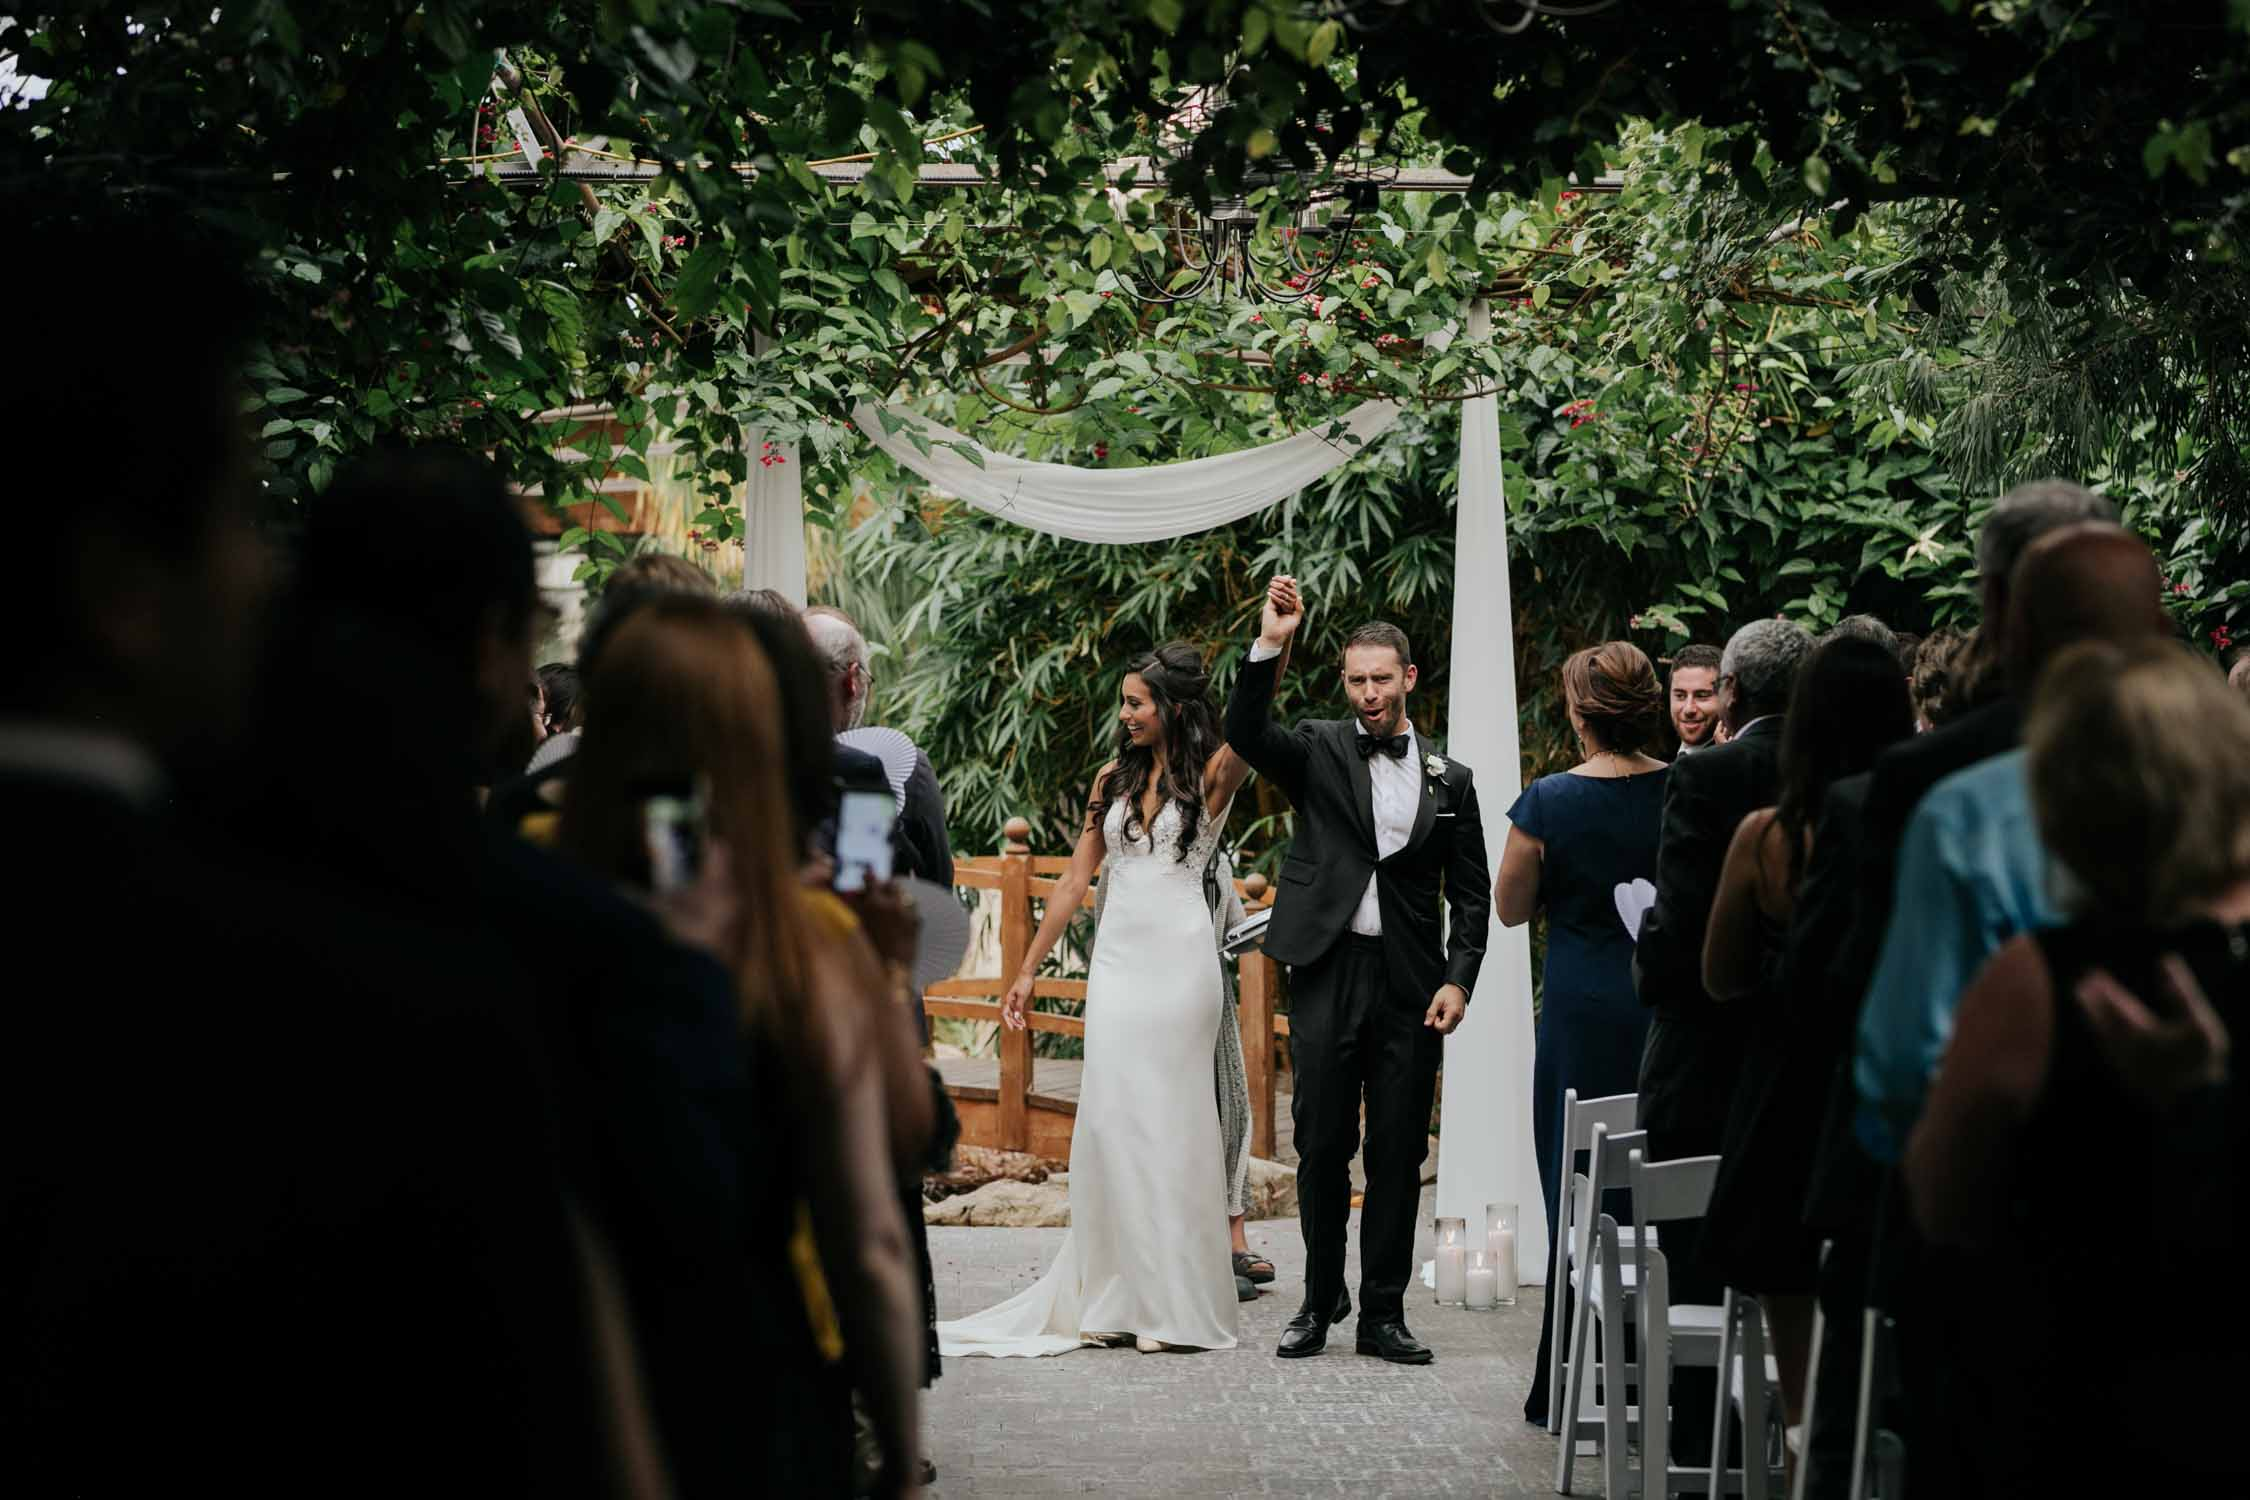 Happy joyful wedding photo of bride and groom walk down the aisle as everyone cheers them on at Emotional romantic moment after the first kiss of bride and groom hugging at Madsen's Greenhouse wedding venue in Newmarket close to Toronto